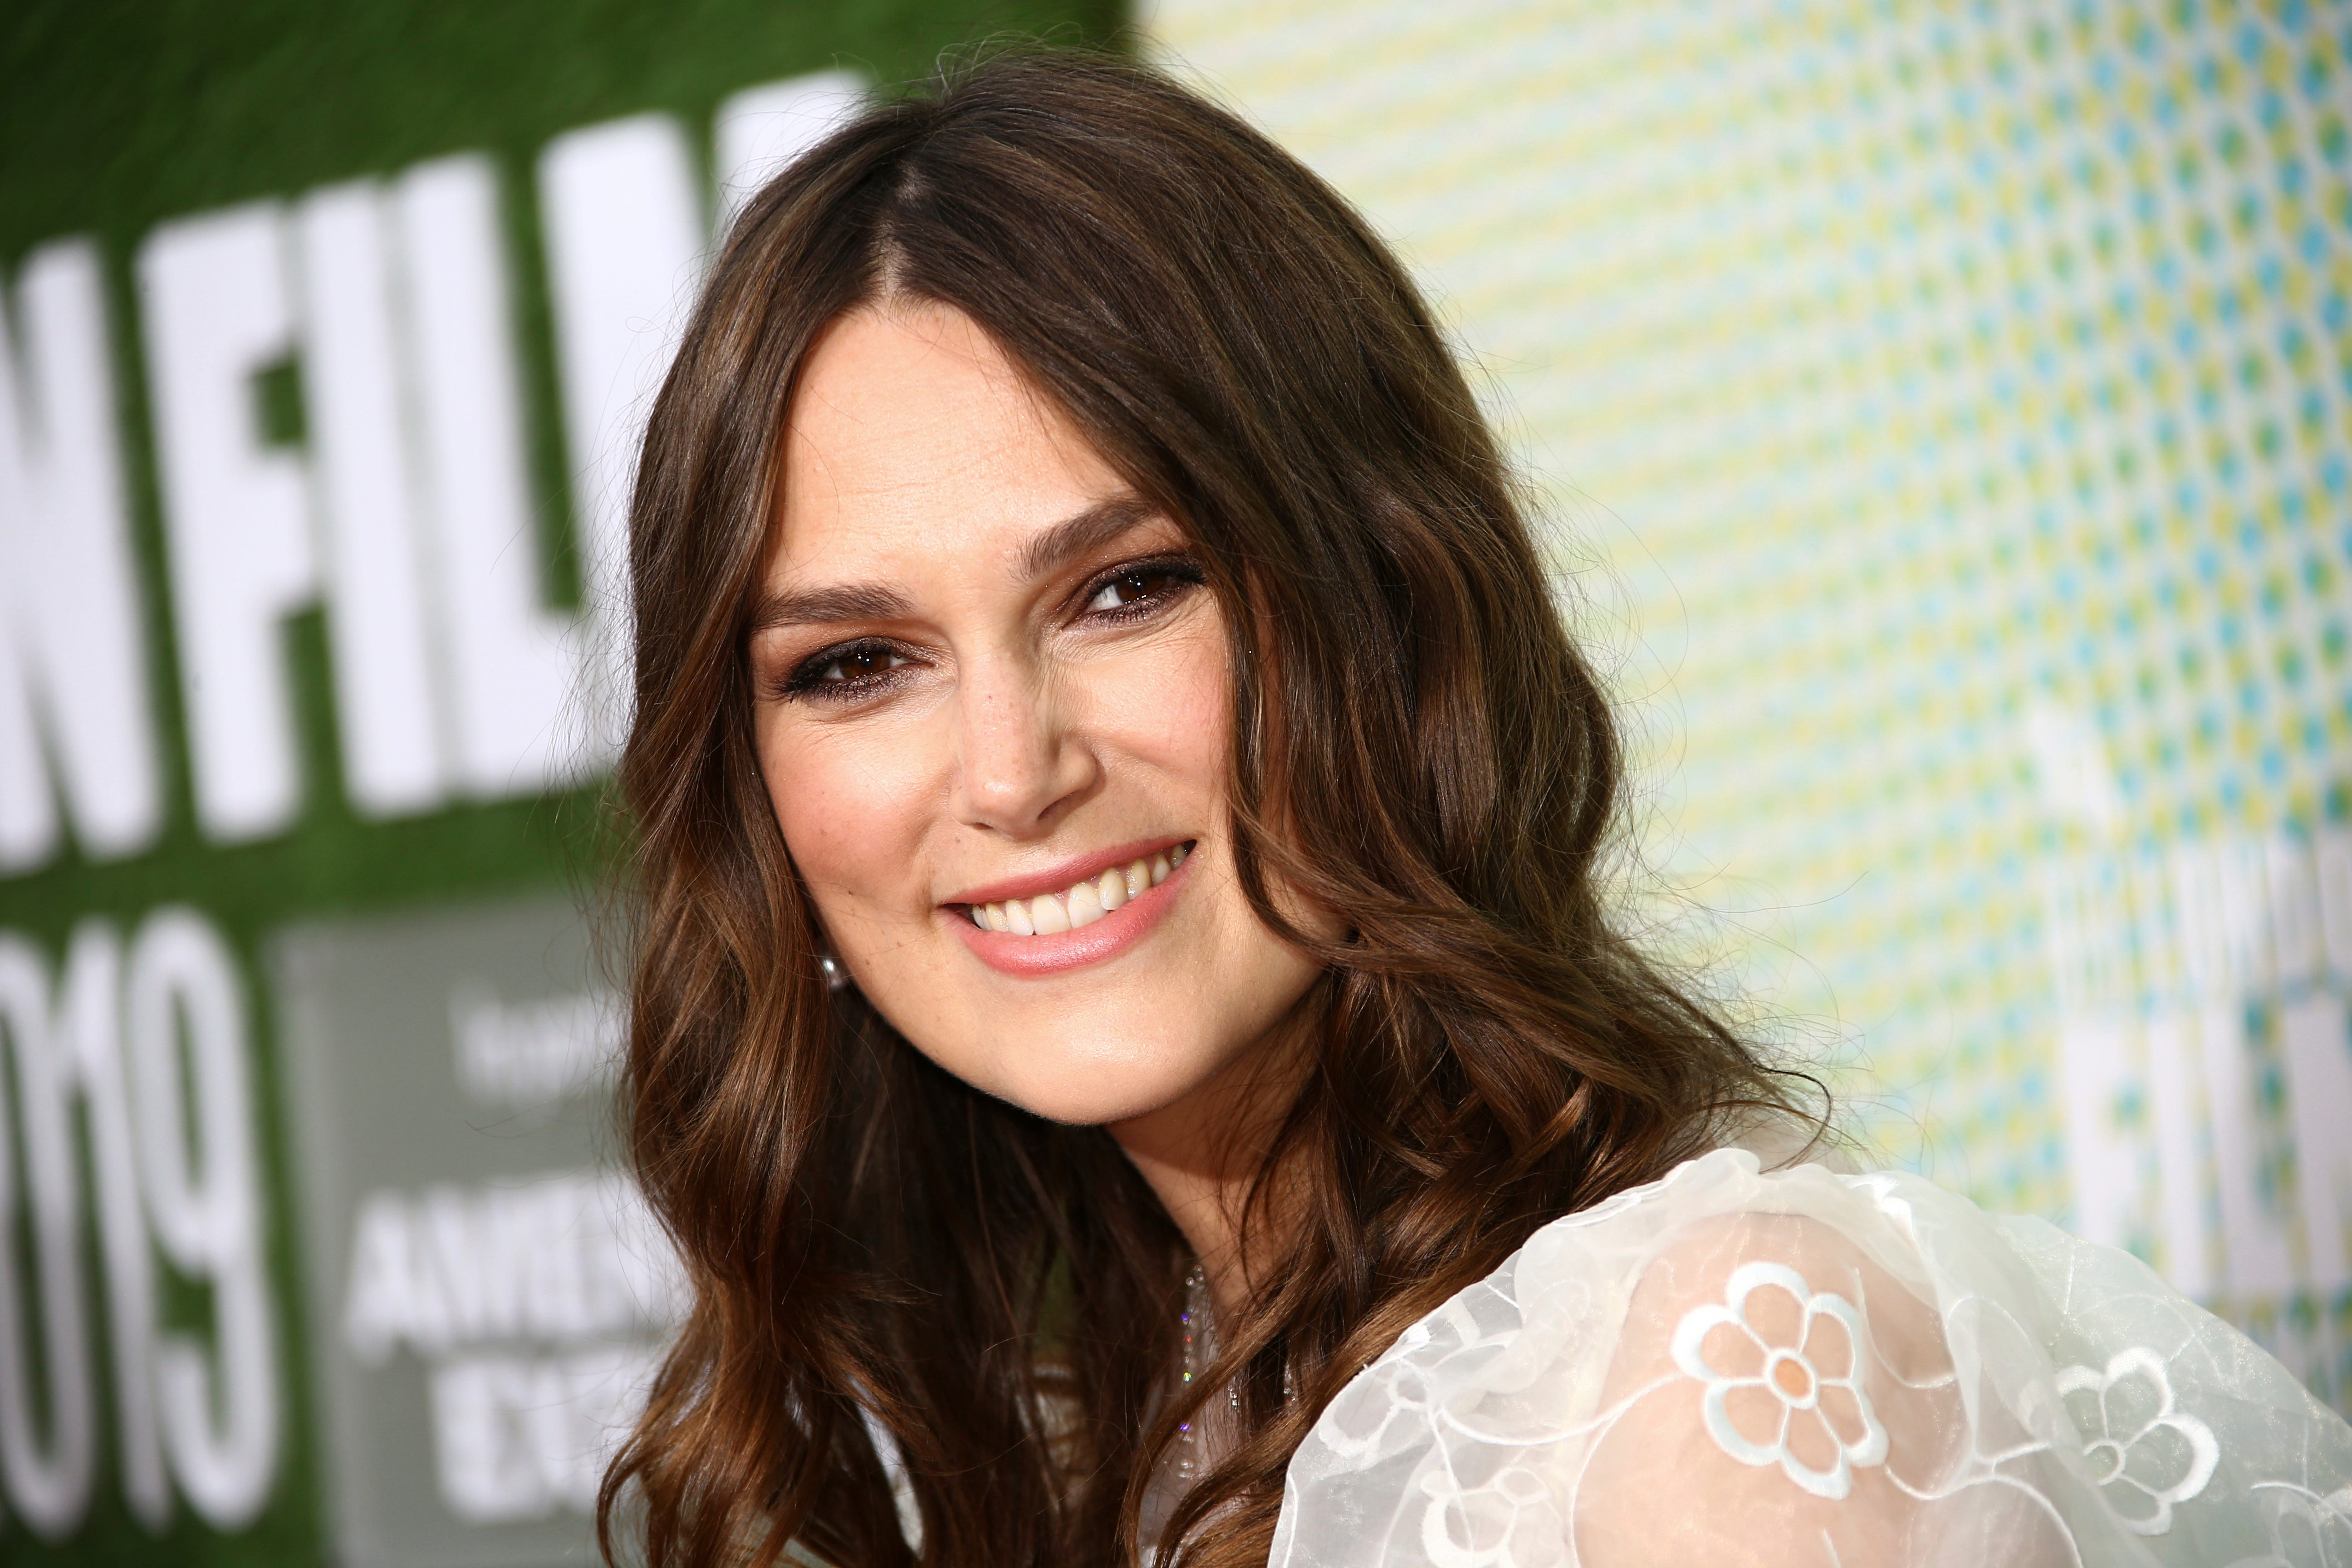 Keira Knightley reveals daughter's name and it's delightful